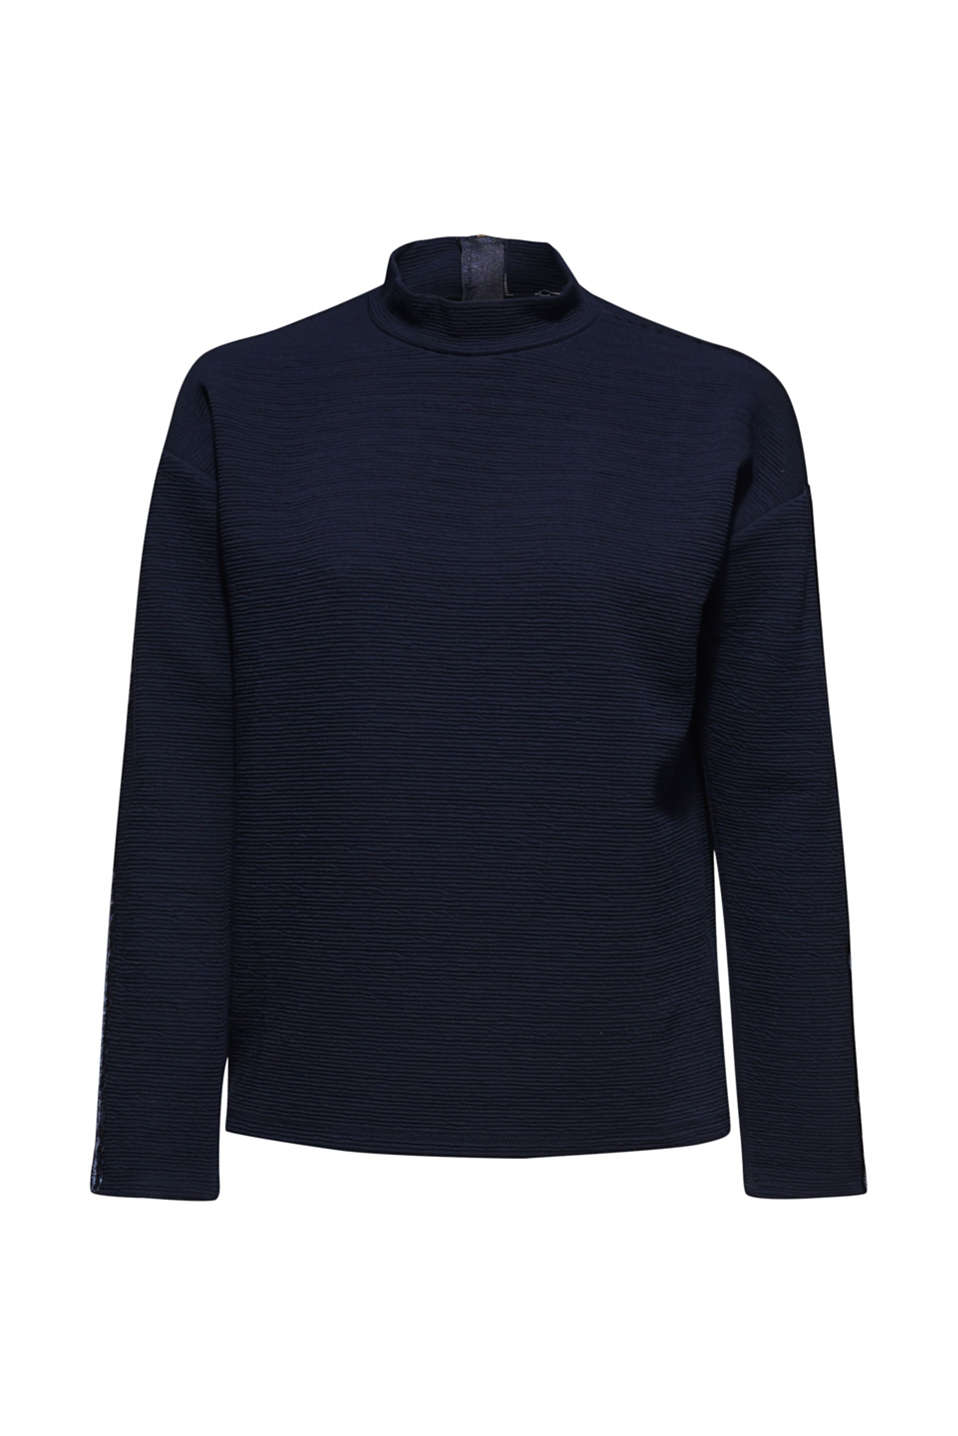 Stretch long sleeve top with velvet details, NAVY, detail image number 8